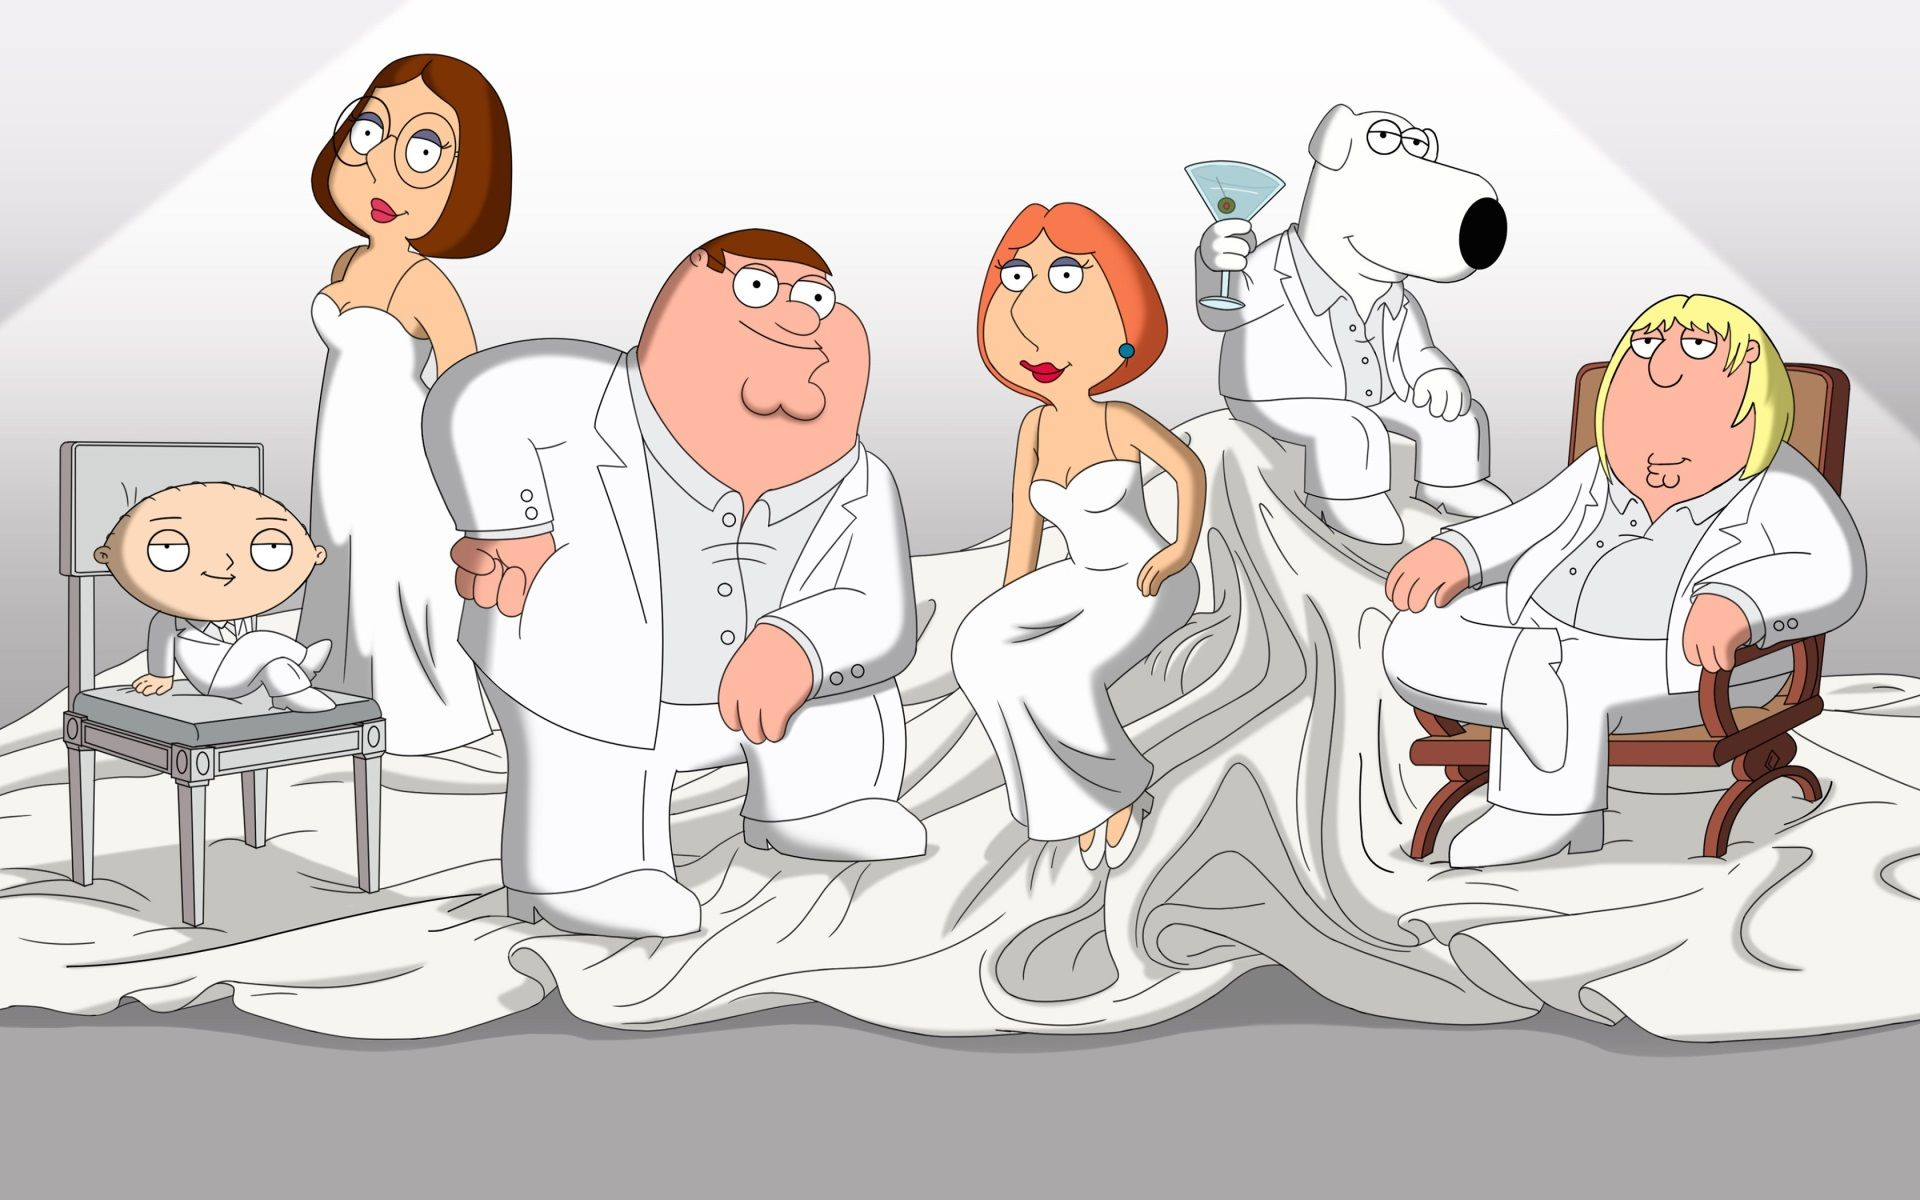 Oh no read this in voice family guy gay